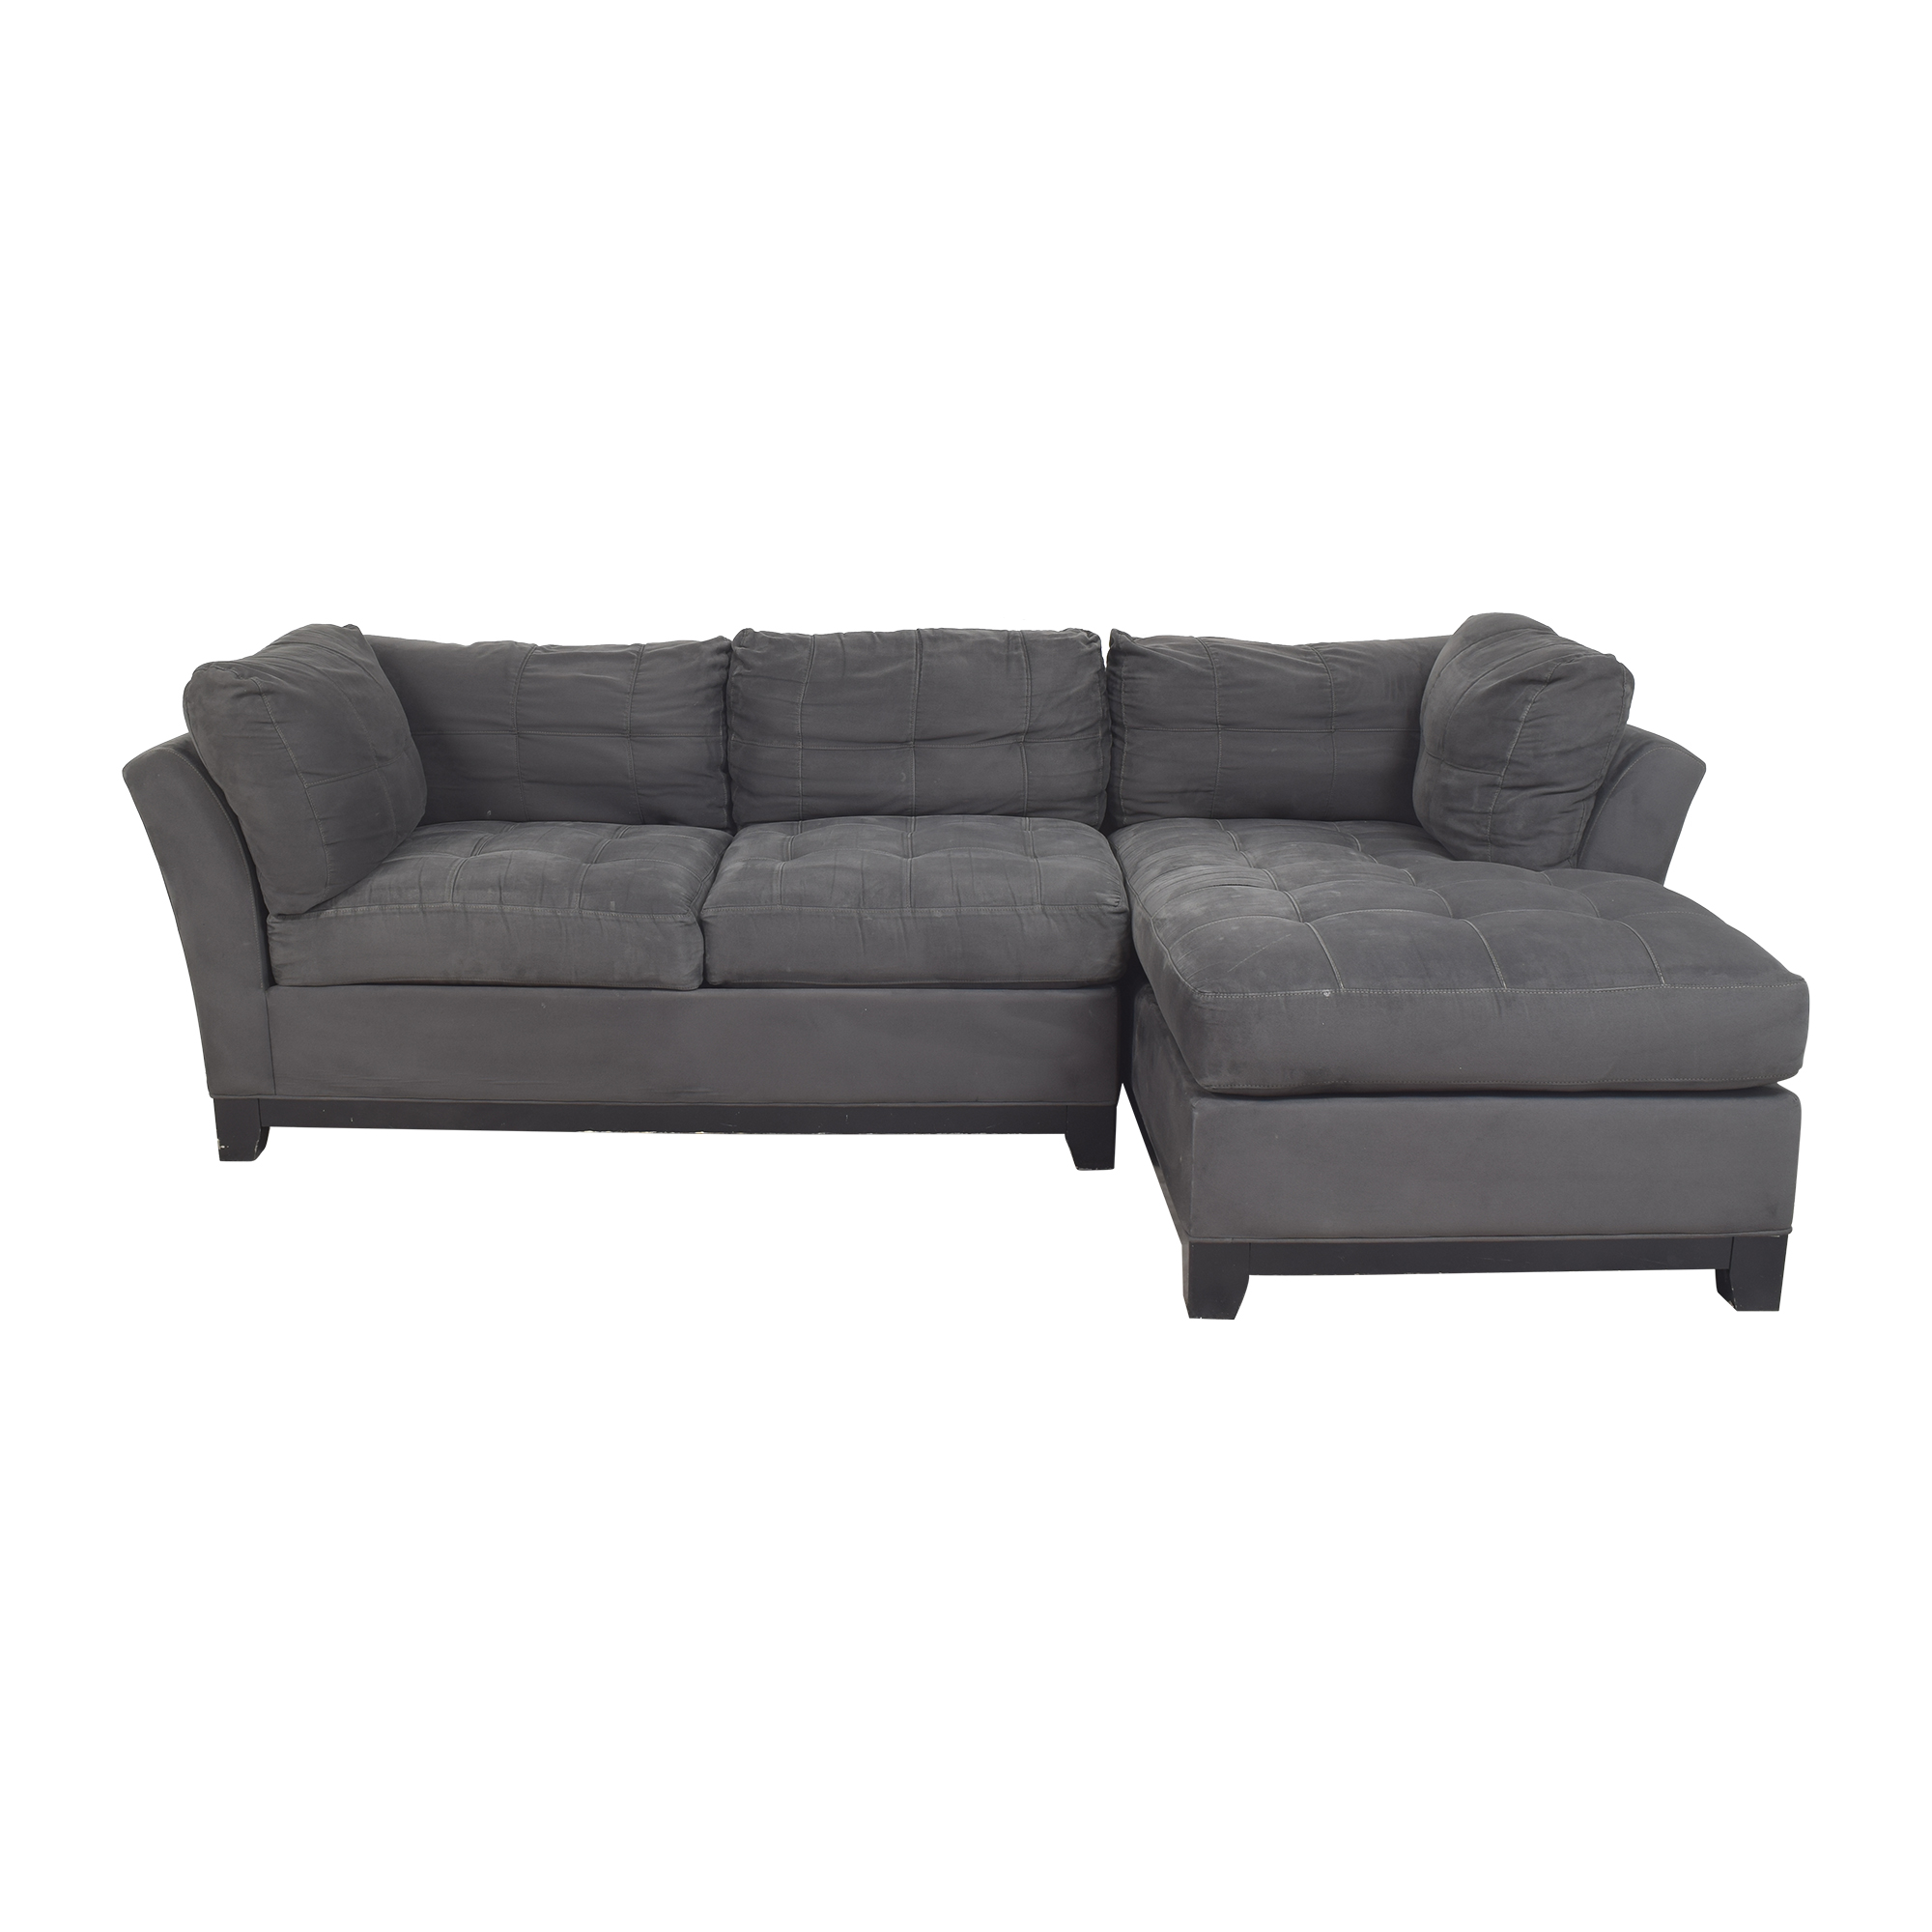 Cindy Crawford Home Cindy Crawford Home Metropolis Chaise Sectional Sofa dark grey